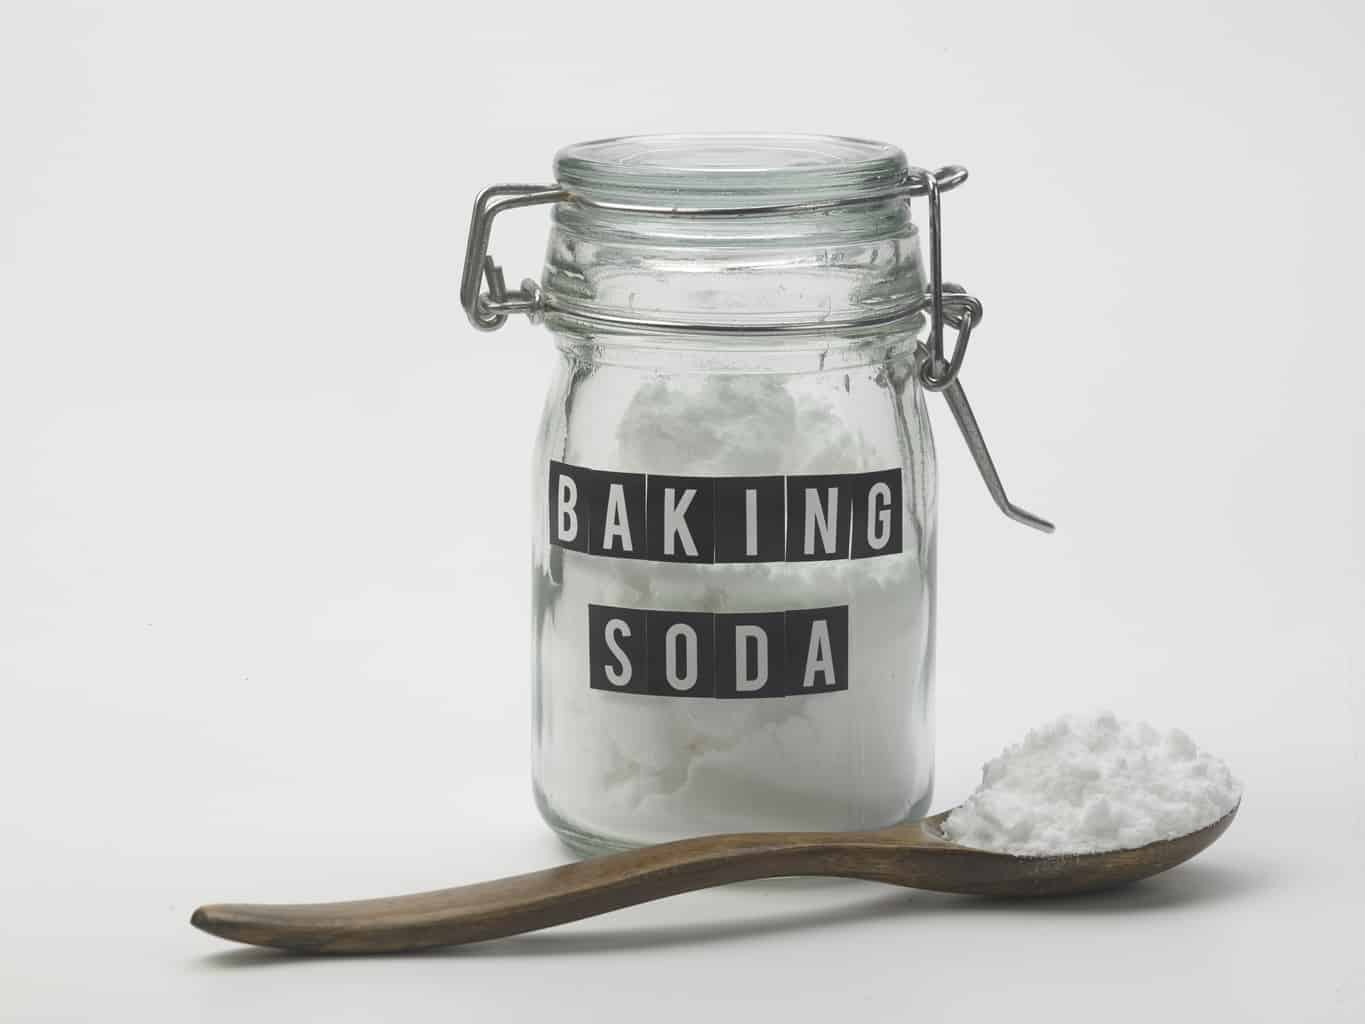 Every man should know this baking soda use.